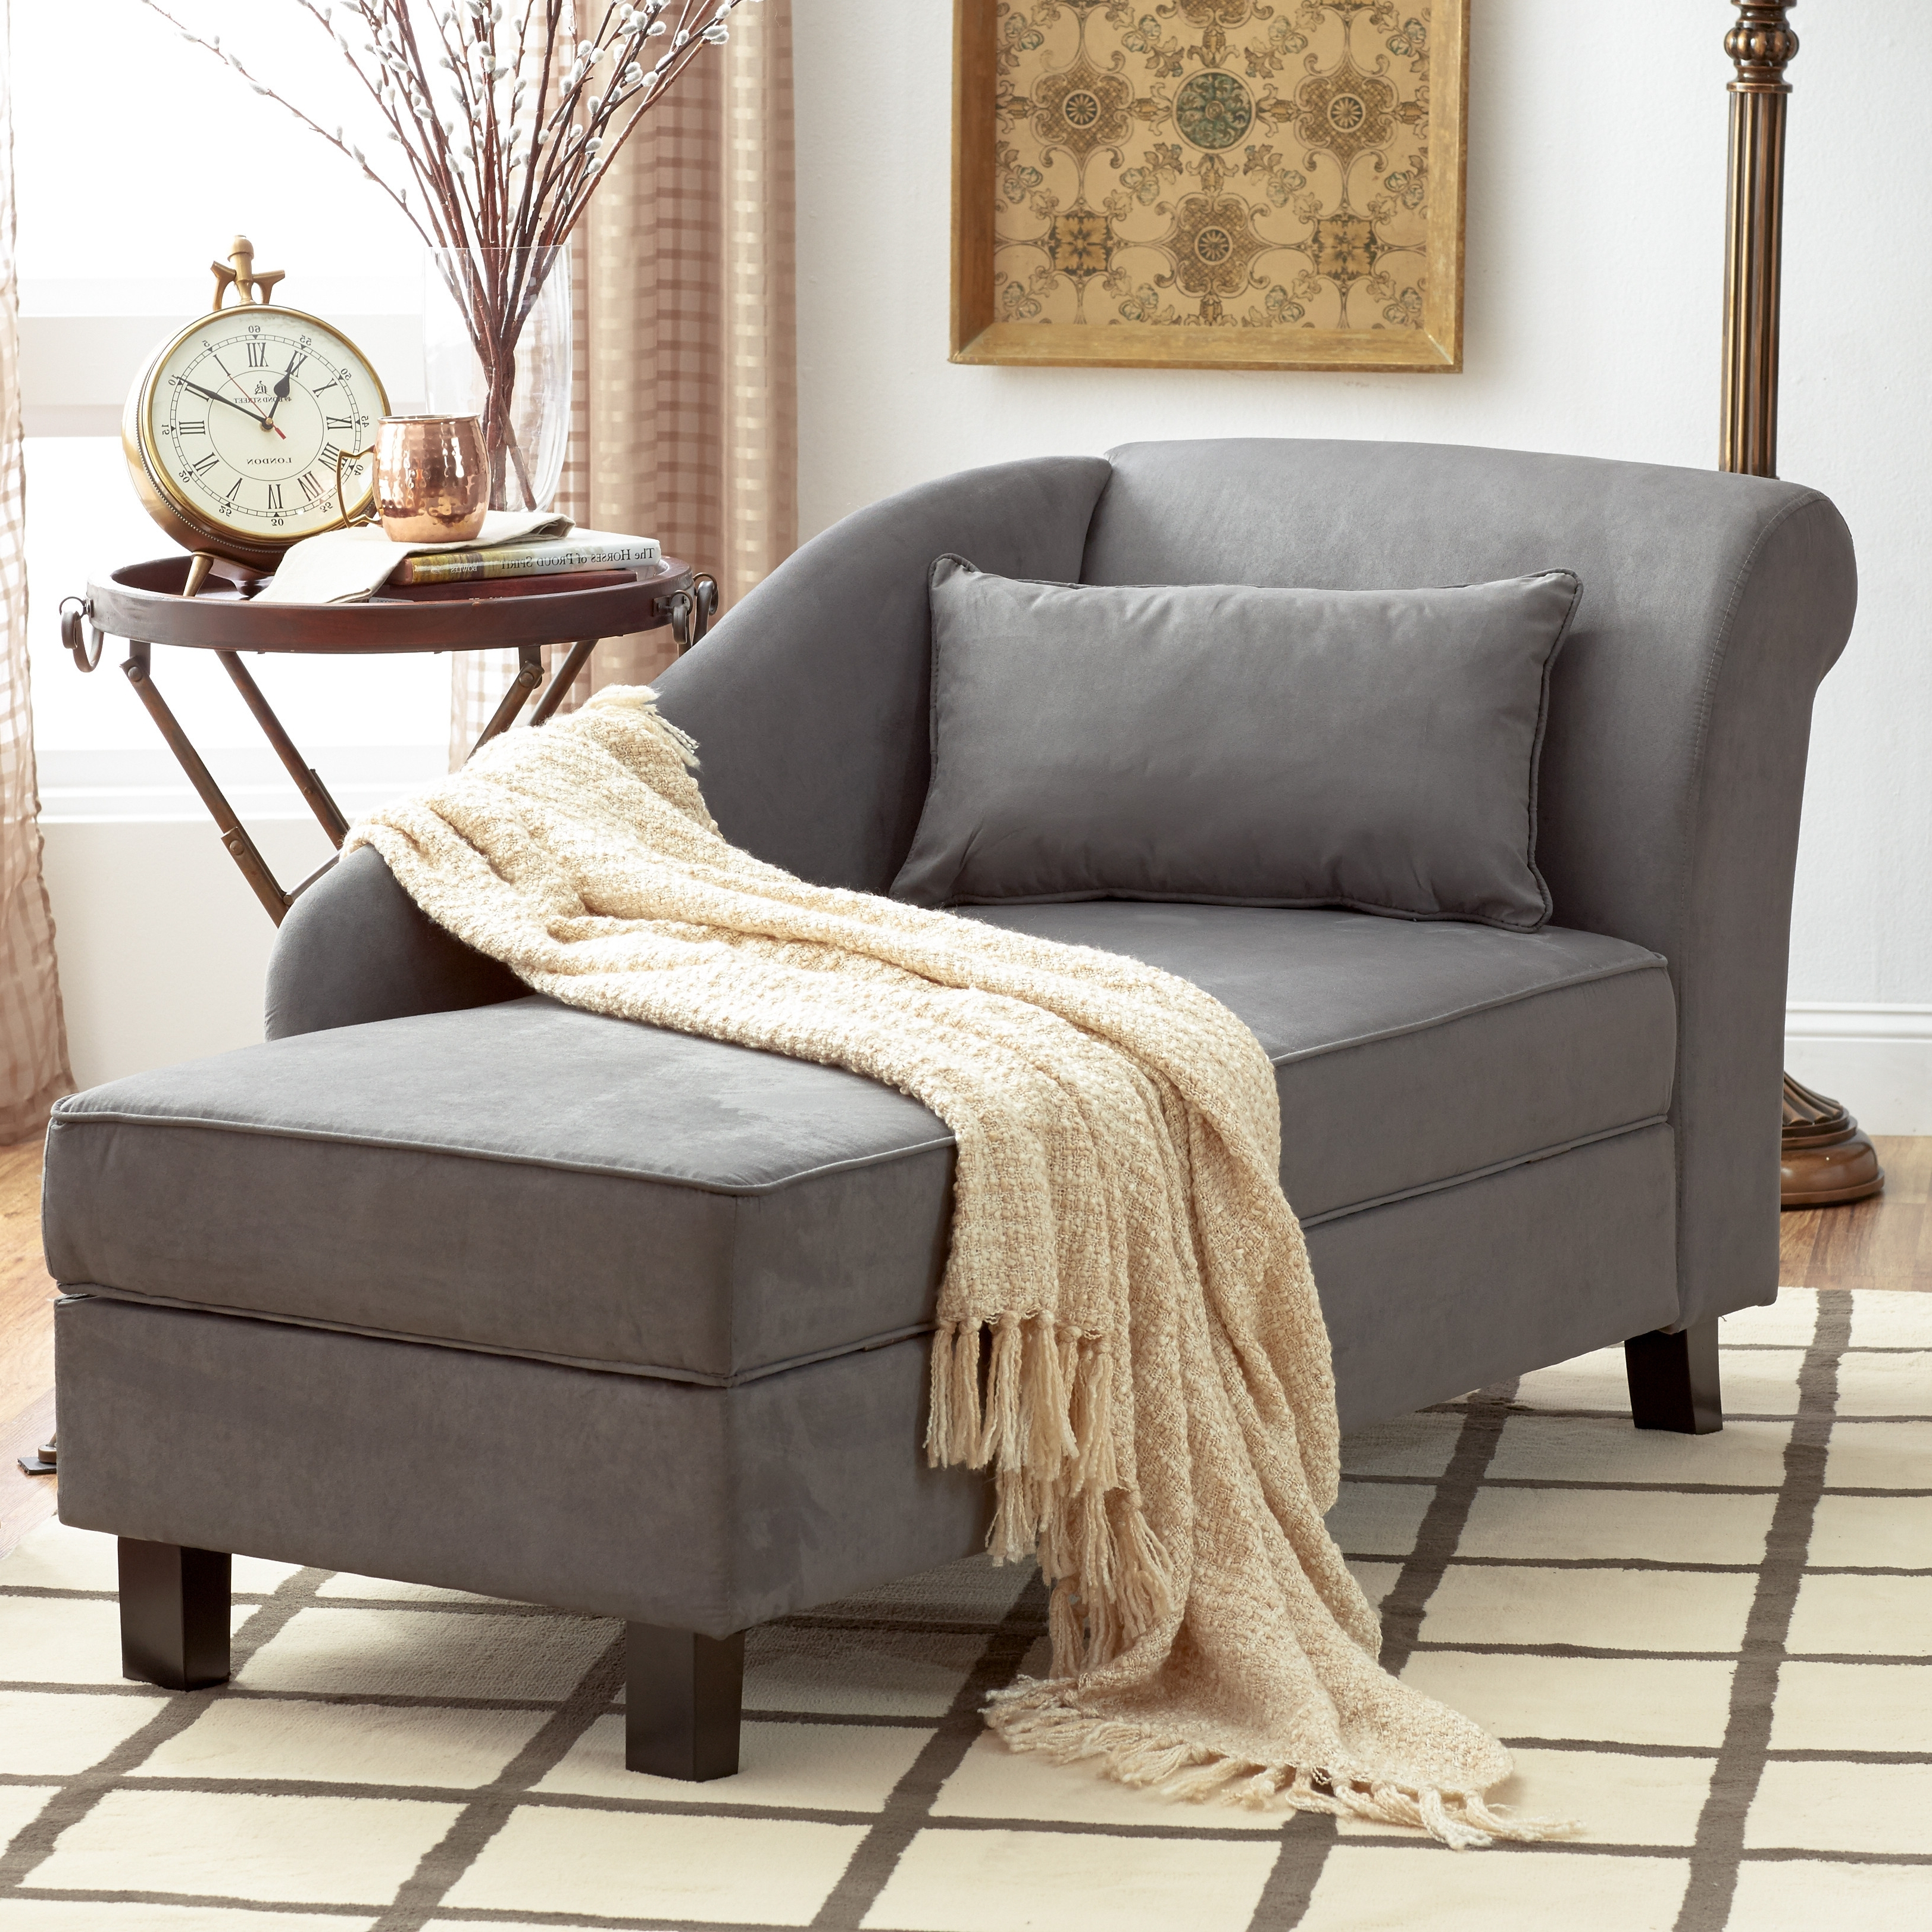 Lounge Chair Cushion Storage • Lounge Chairs Ideas In Most Current Round Chaise Lounges (View 15 of 15)